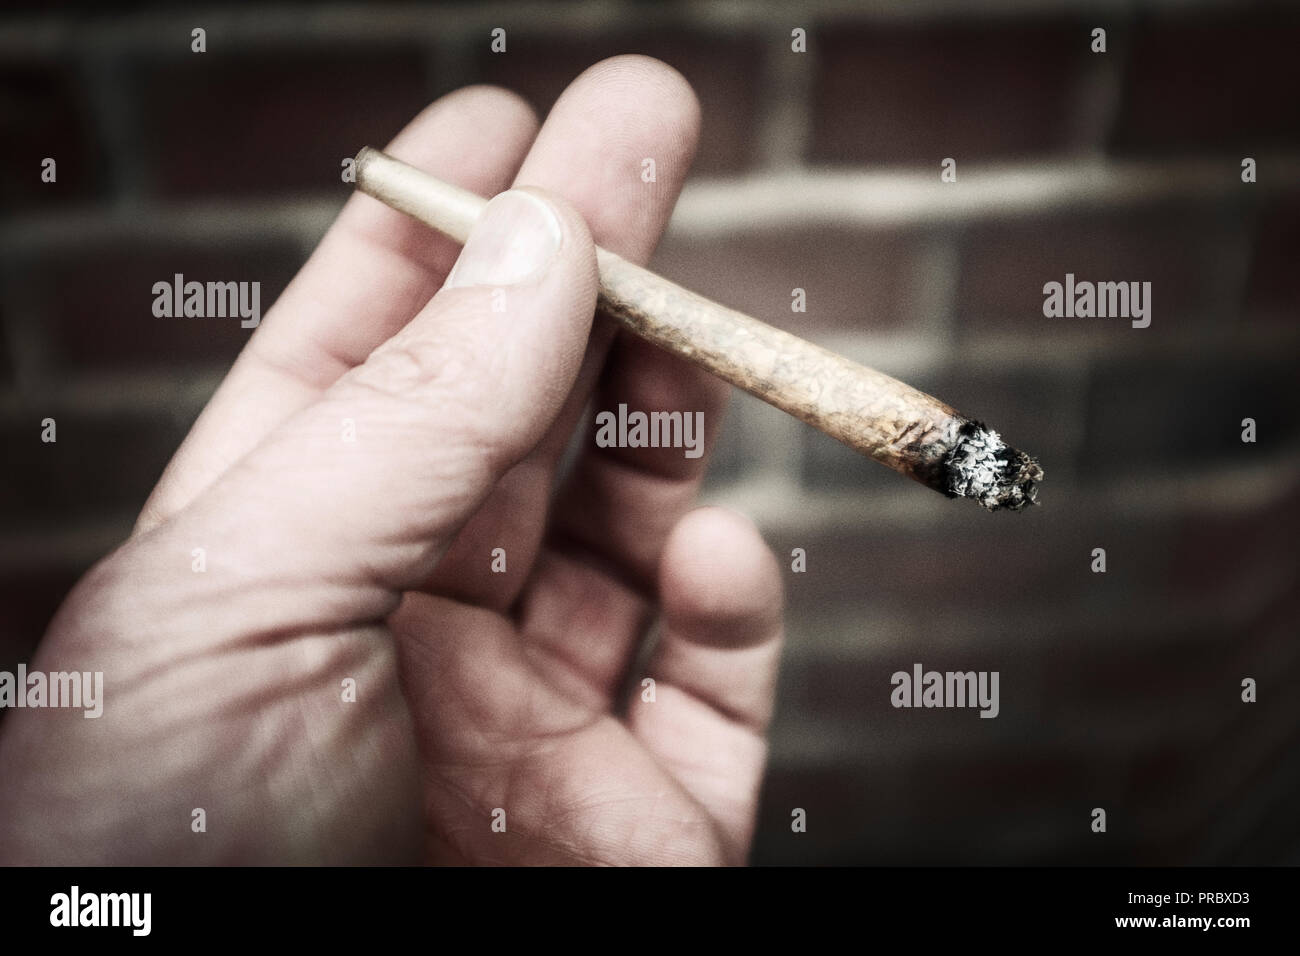 Cannabis joint-close-up Stock Photo